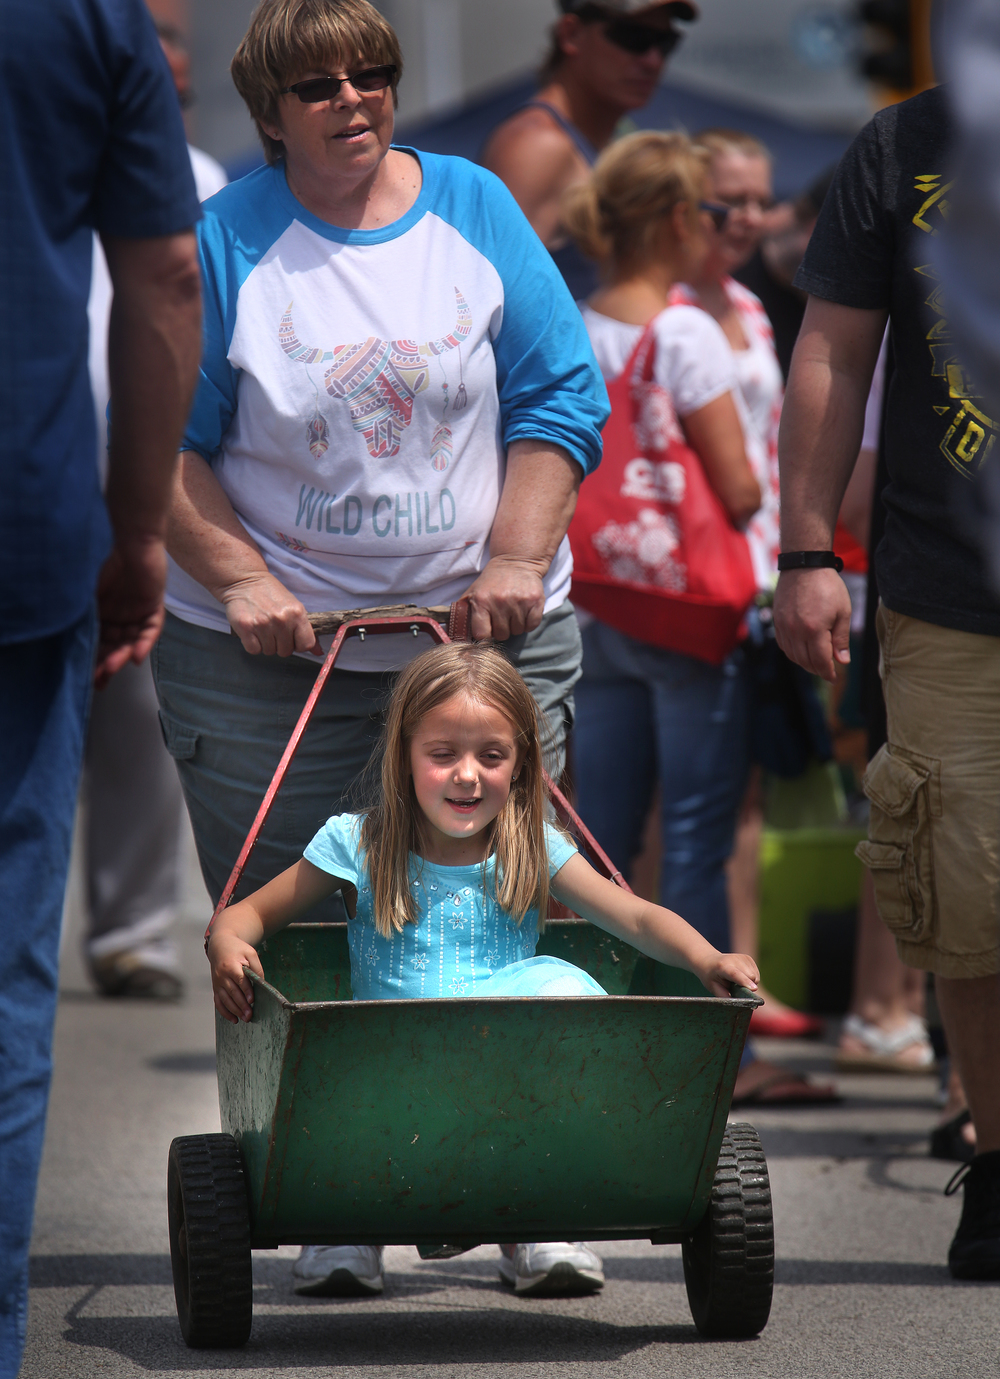 An old garden cart probably dating to the 1960's was purchased by Deb Cox of Hillsboro during the market. She said she planned to convert it to a planter for flowers-after she finished using it for more practical considerations: wheeling granddaughter Hayden Rommerskirchen, 6, around during the market. David Spencer/The State Journal-Register